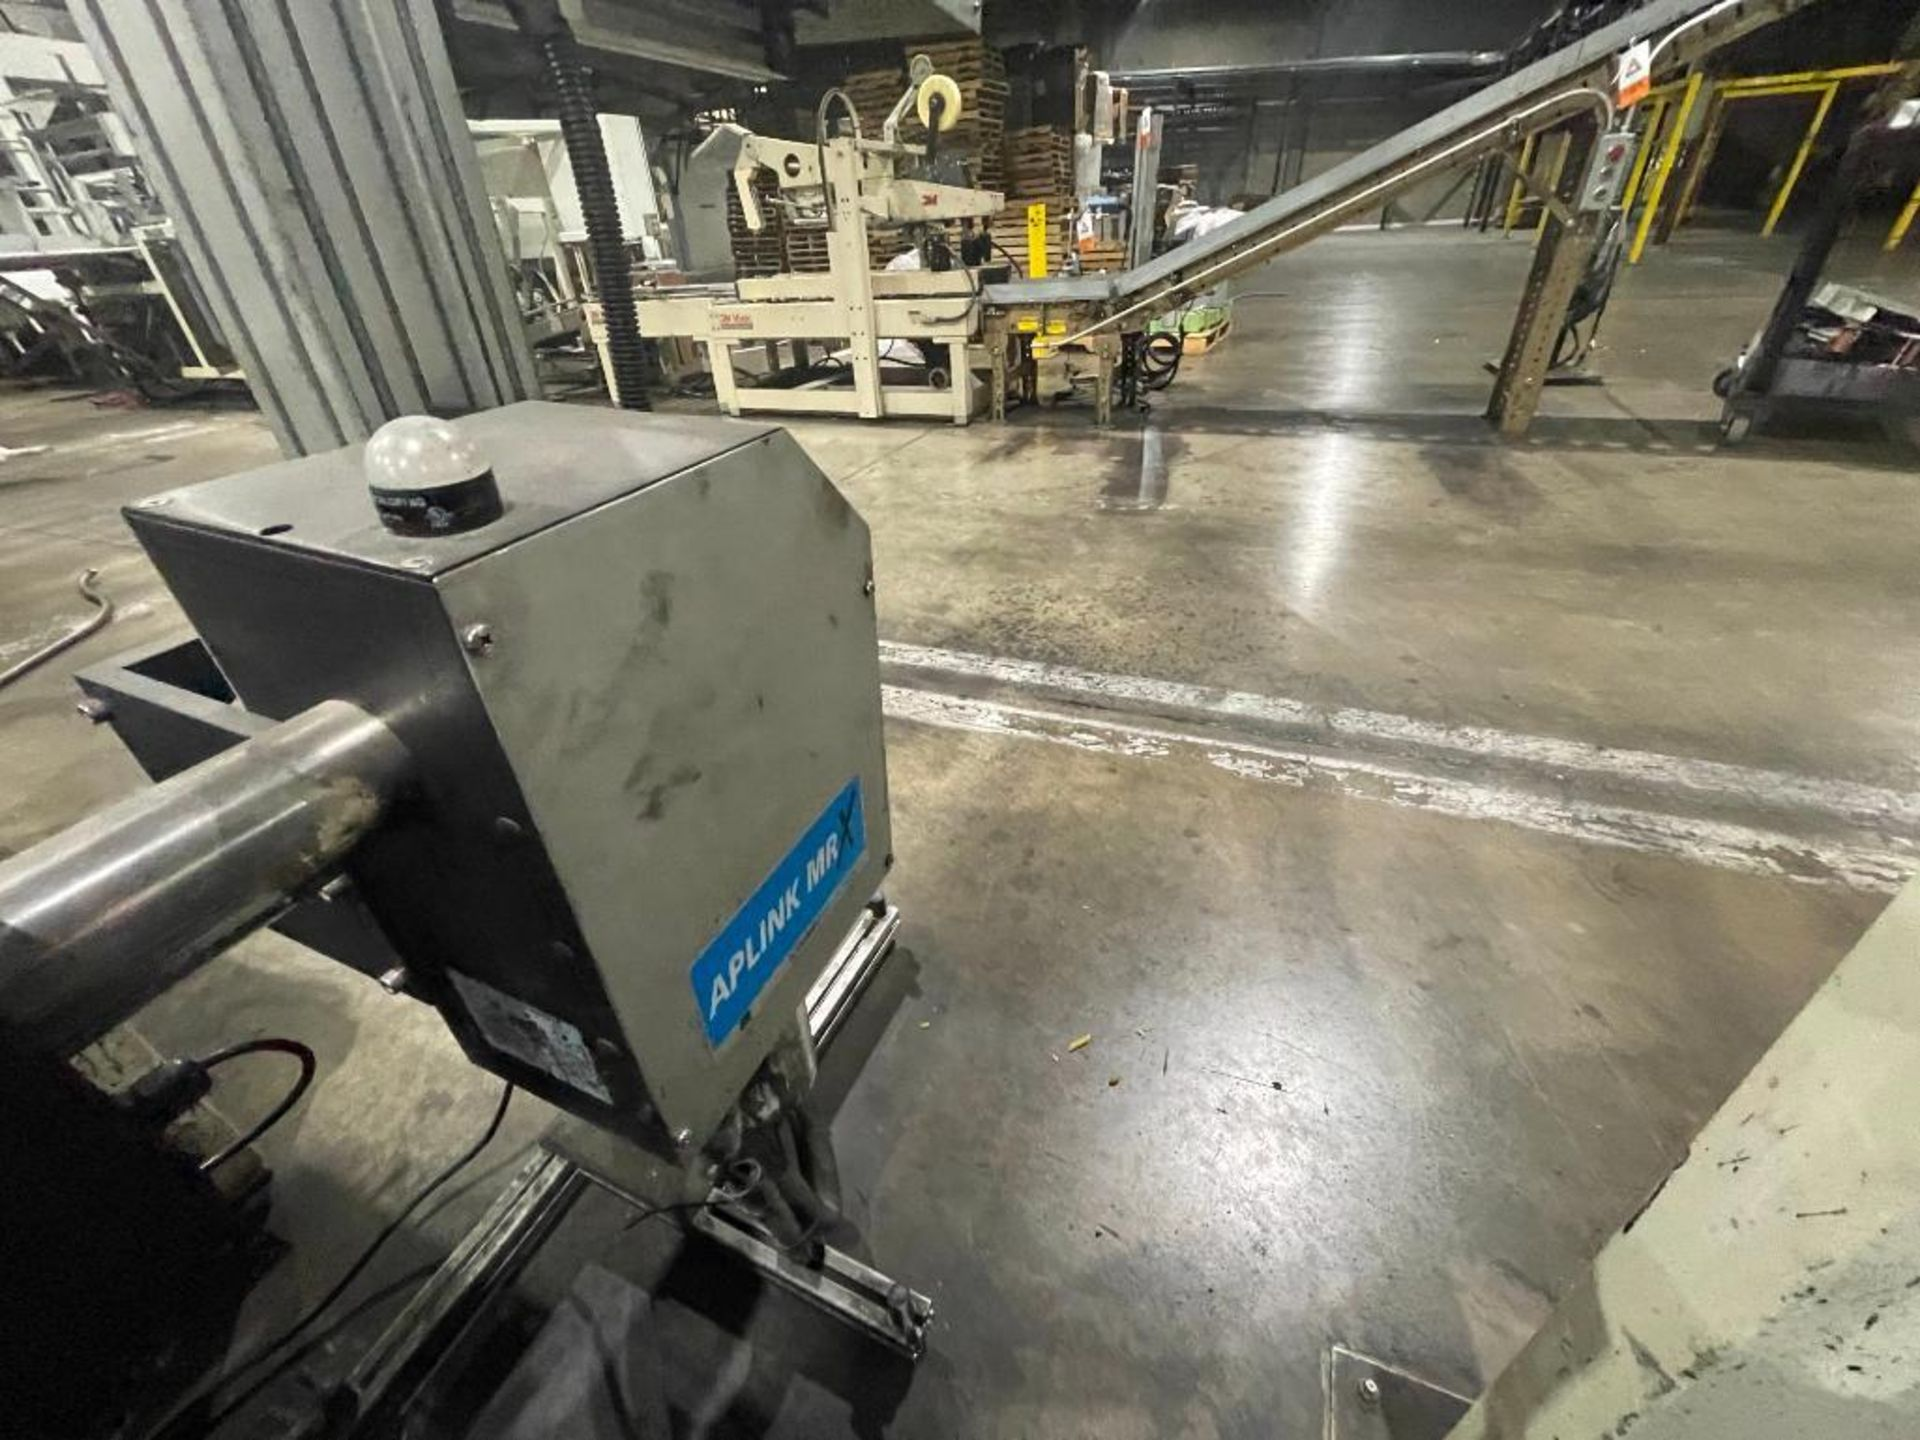 Automatic Printing Systems case coder - Image 9 of 15